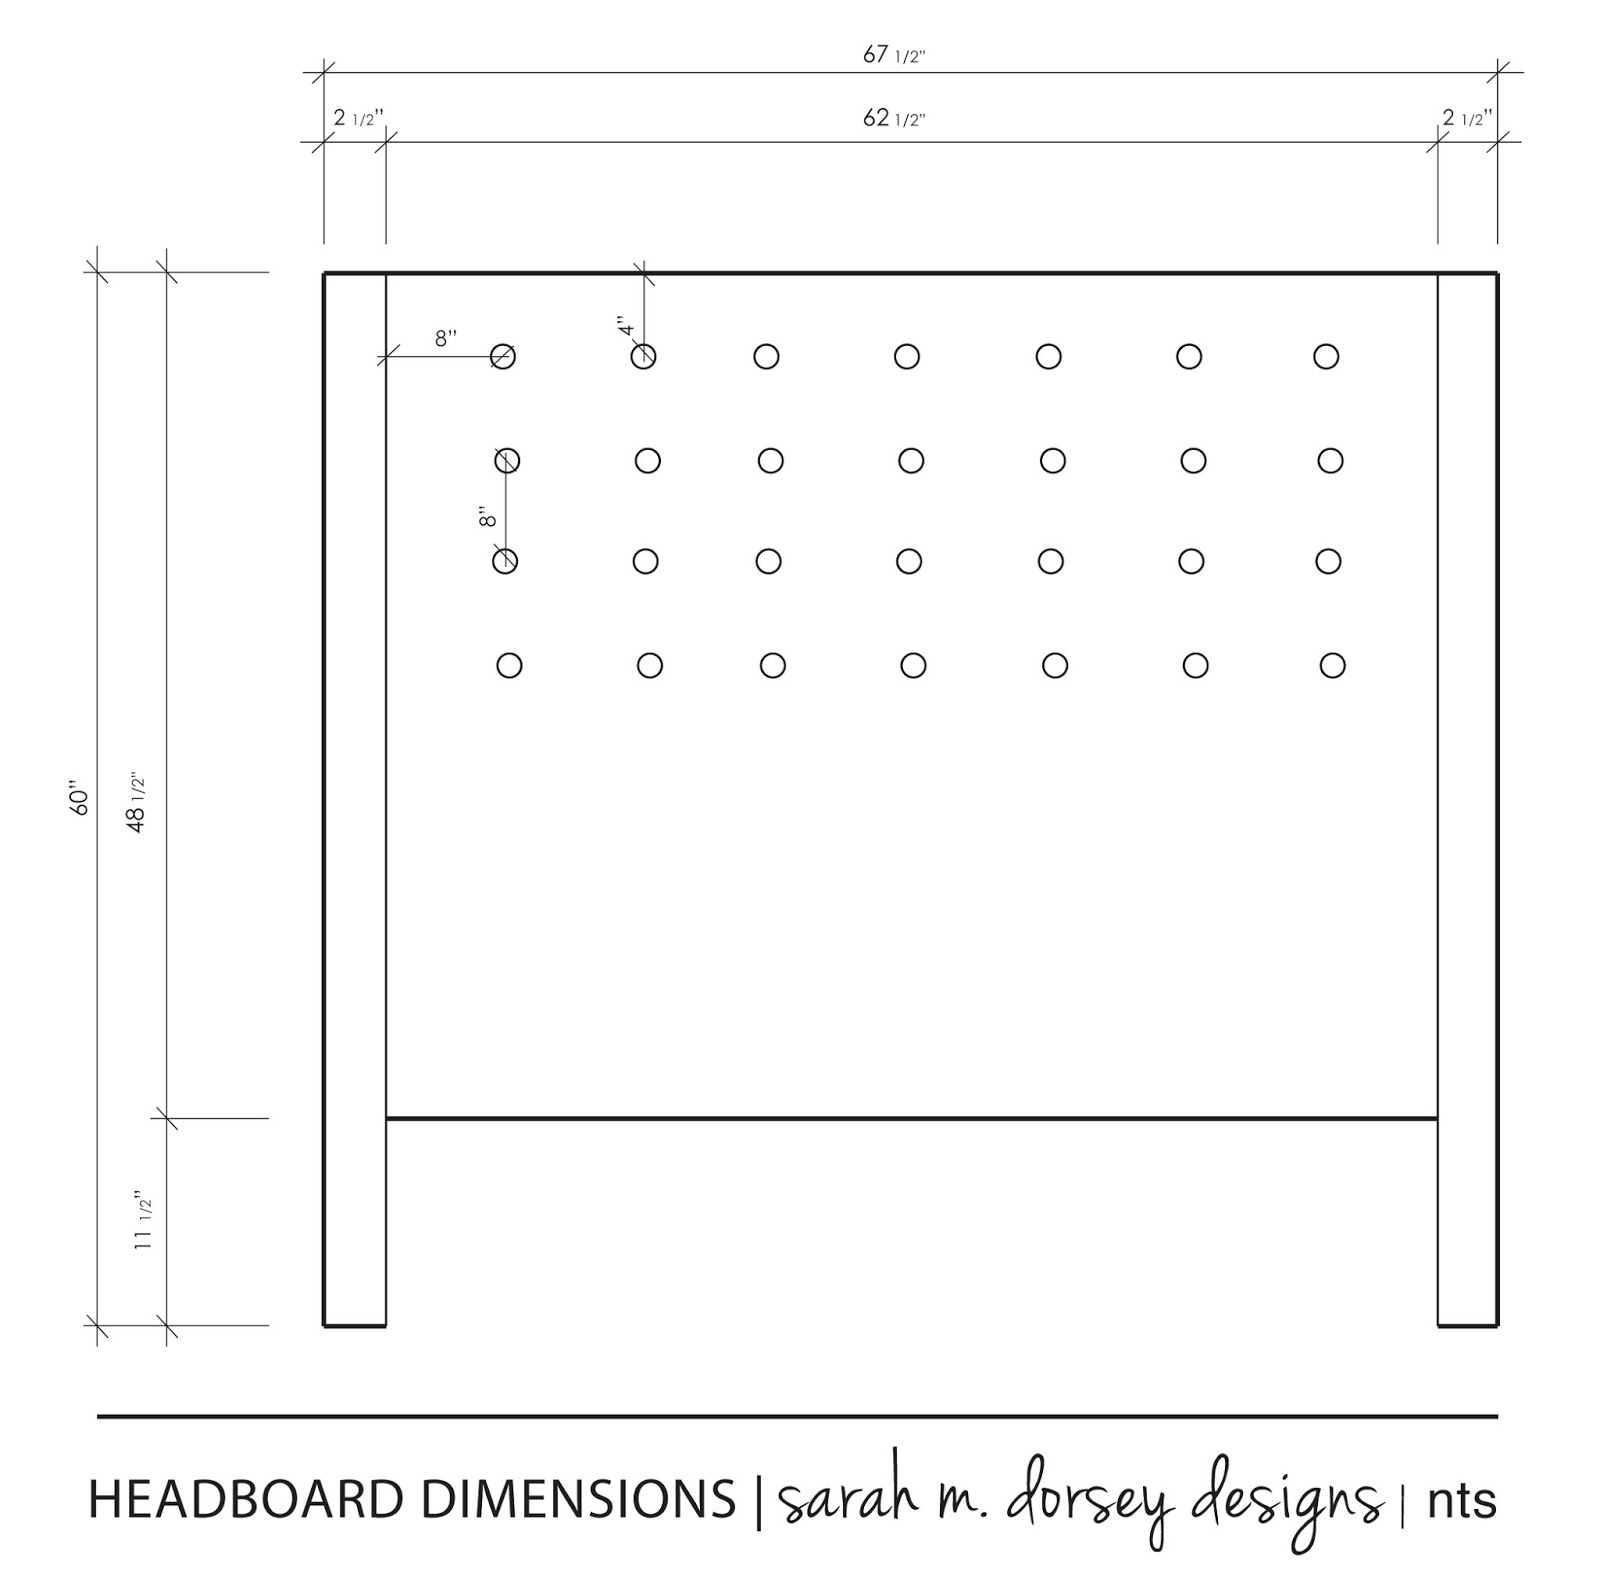 diy headboard complete dorsey designs. Black Bedroom Furniture Sets. Home Design Ideas